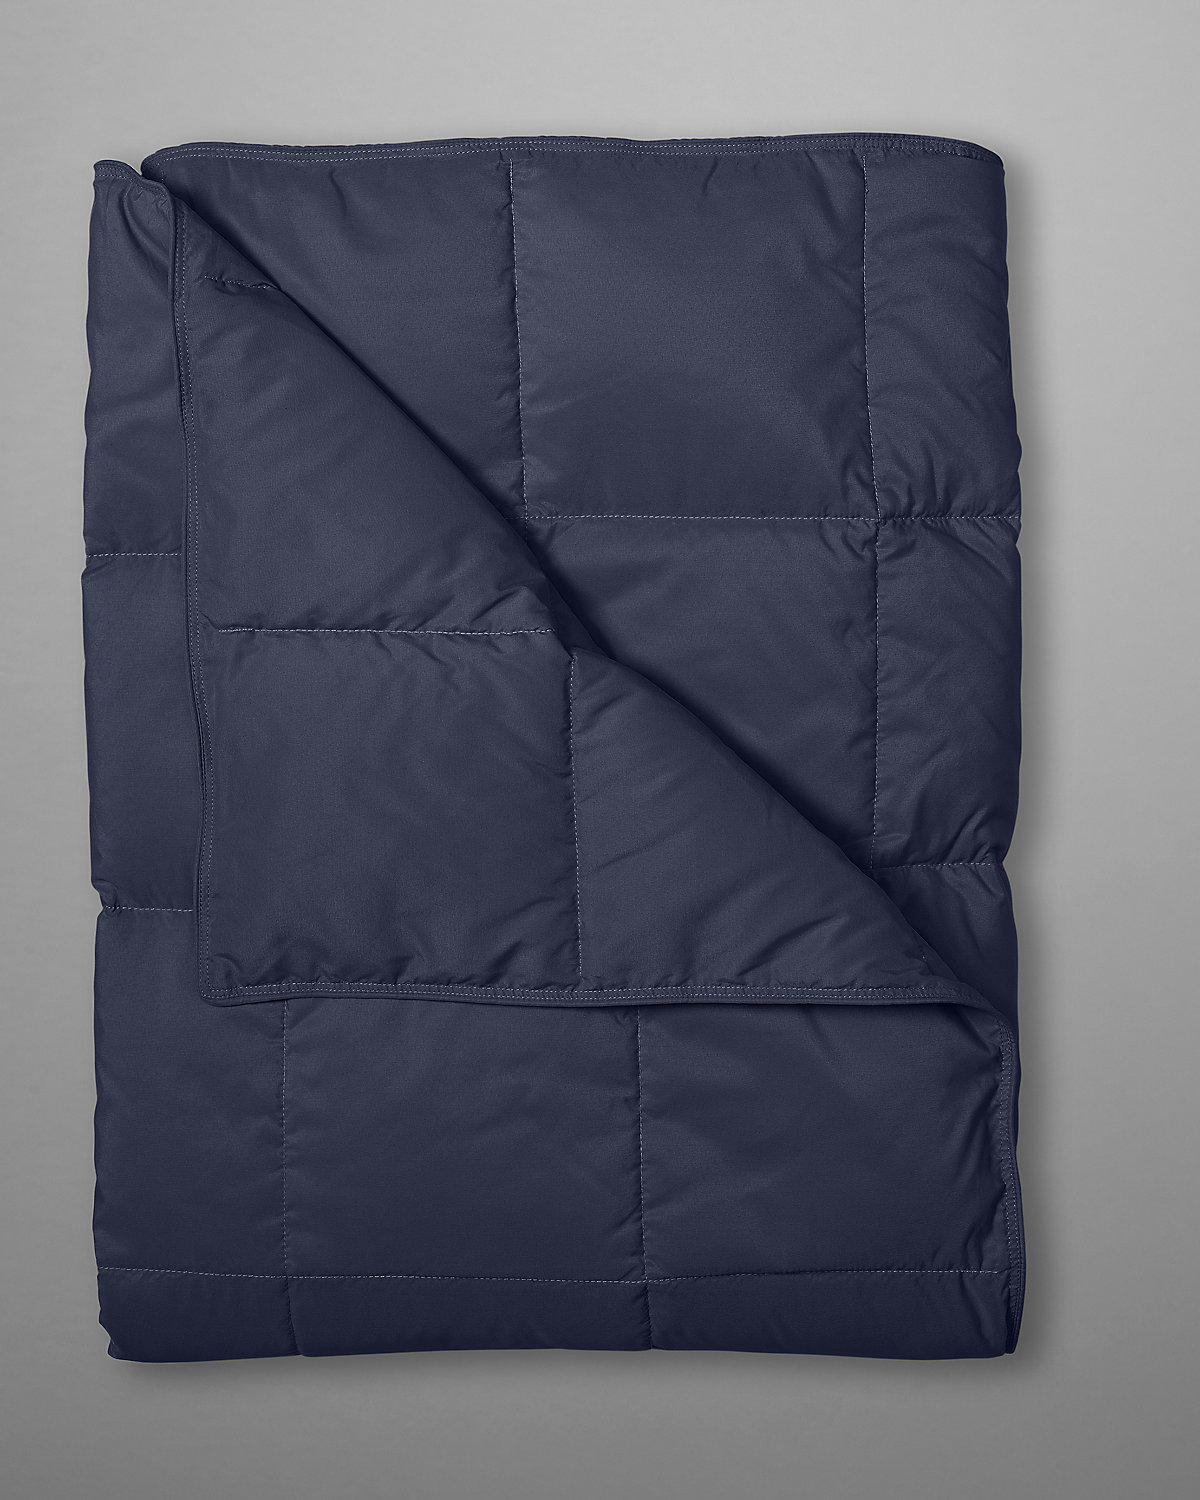 Eddie Bauer Down Throw, Multiple Colors Available